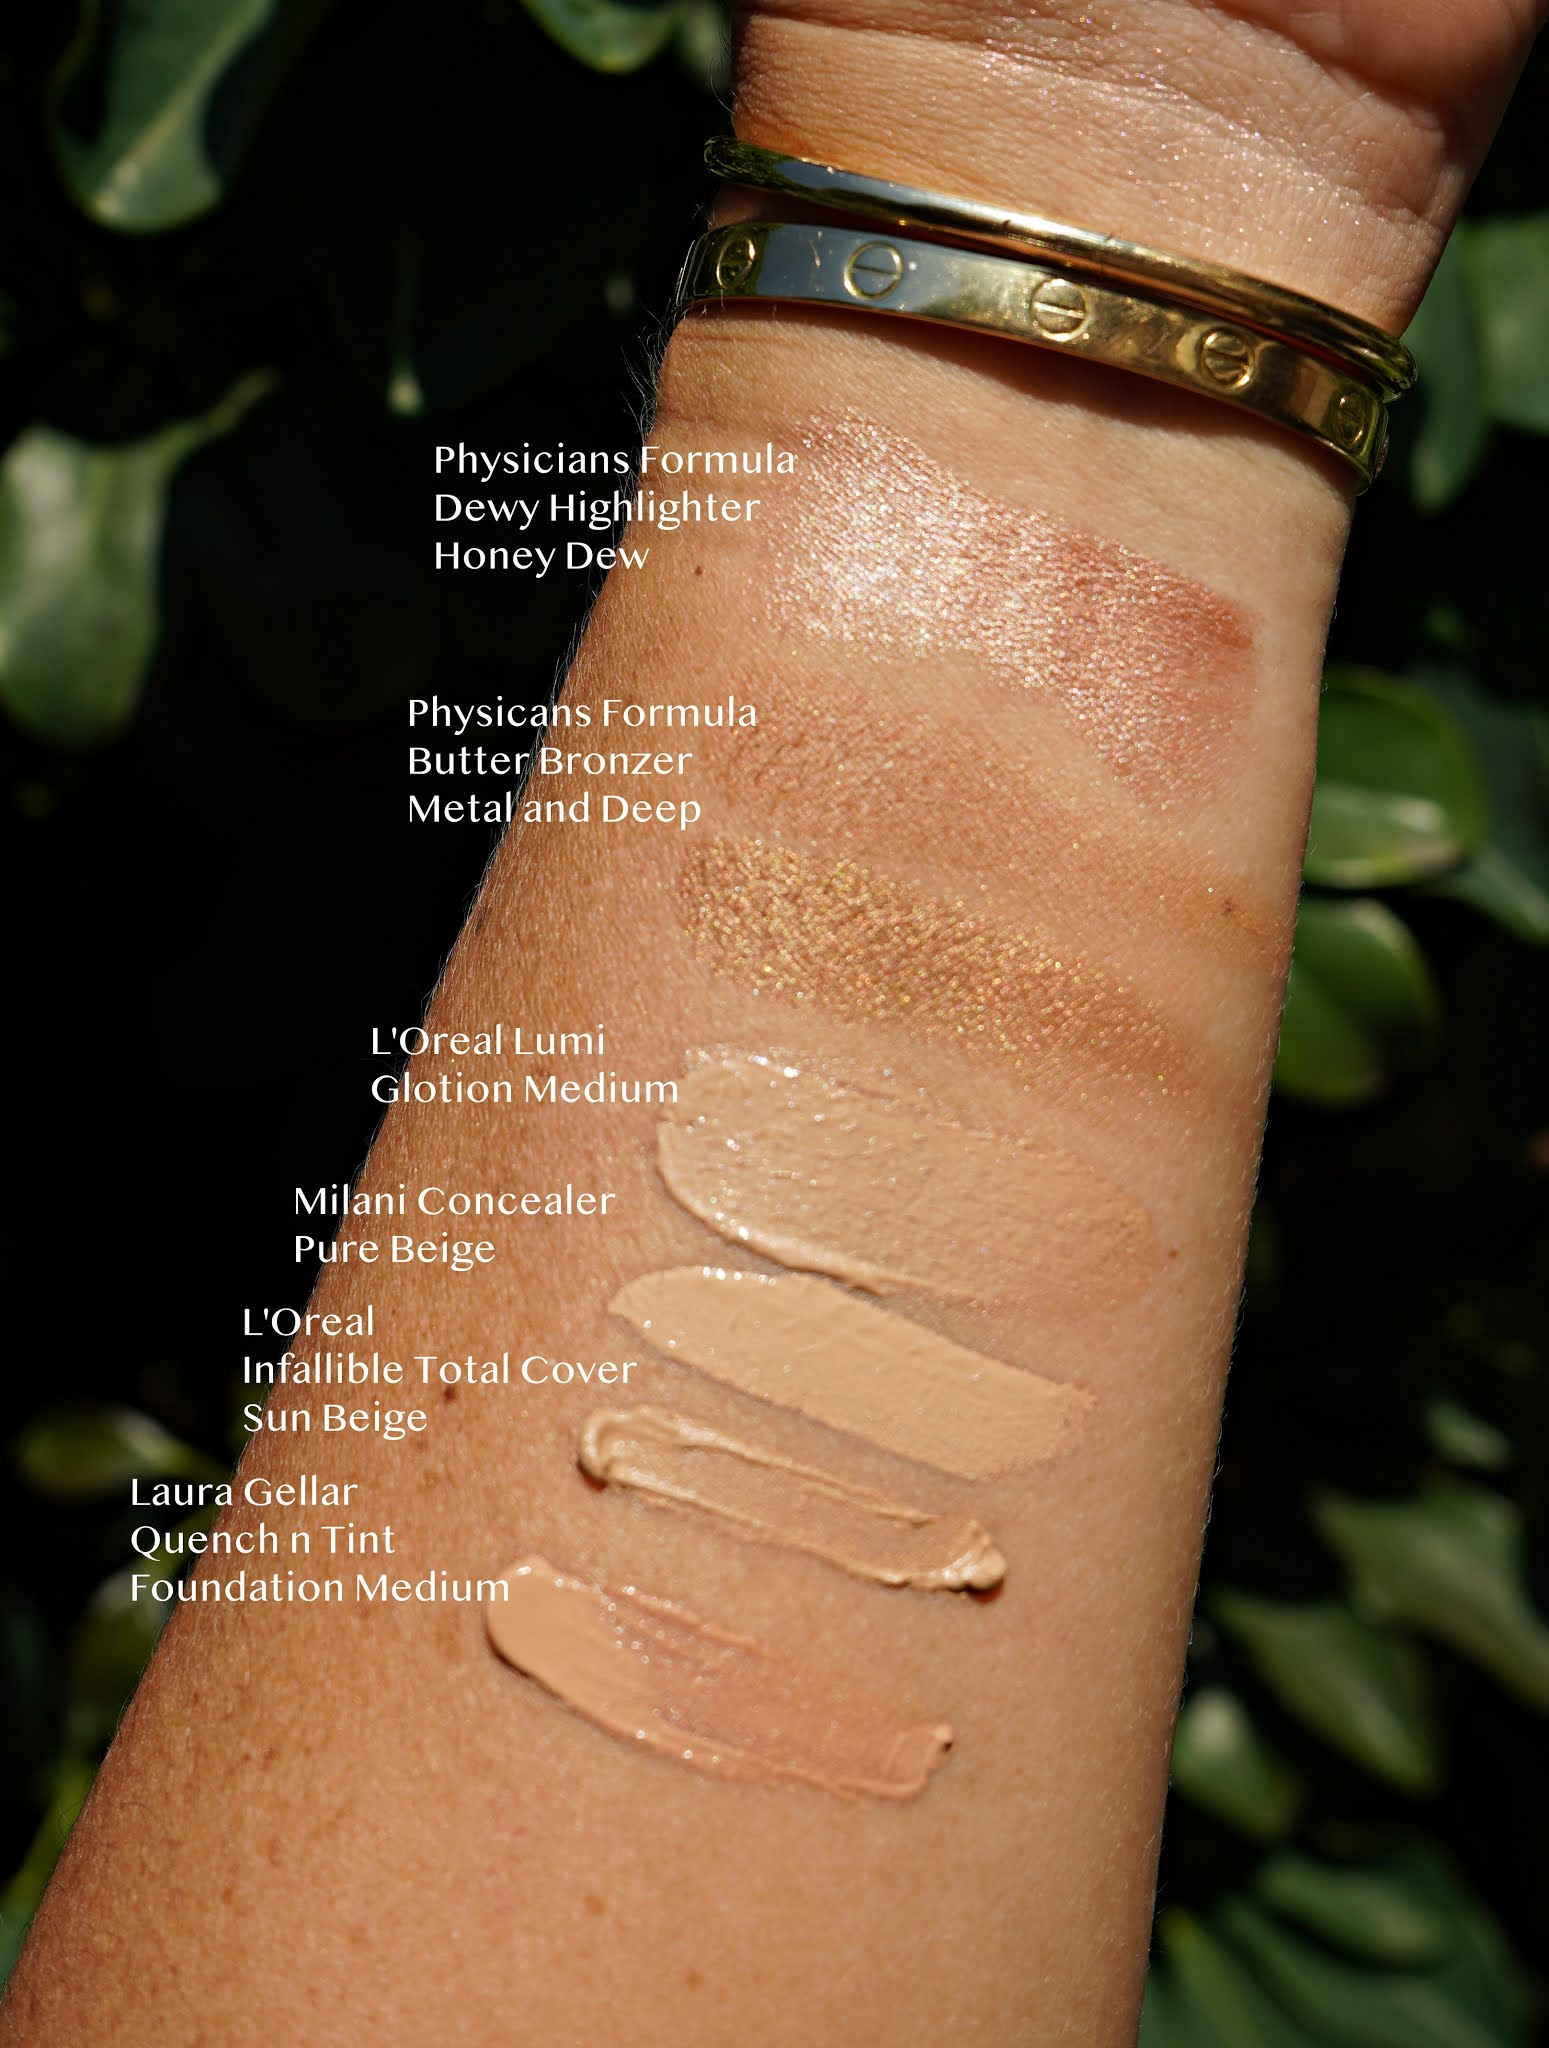 face and base makeup swatches in an arm